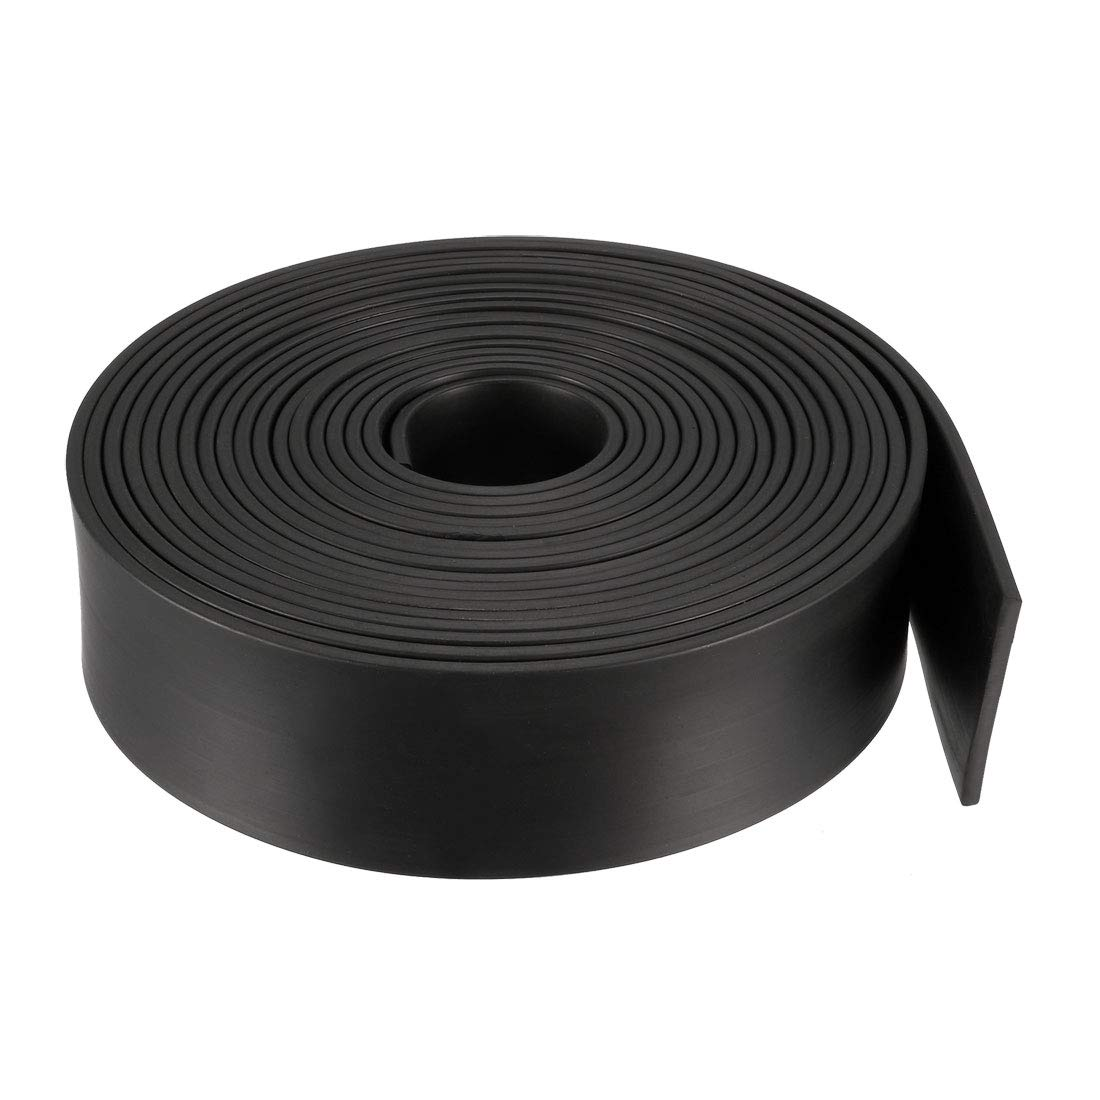 sourcing map Solid Rectangle Rubber Seal Strip 10mm Wide 10mm Thick 1 Meter Long Black